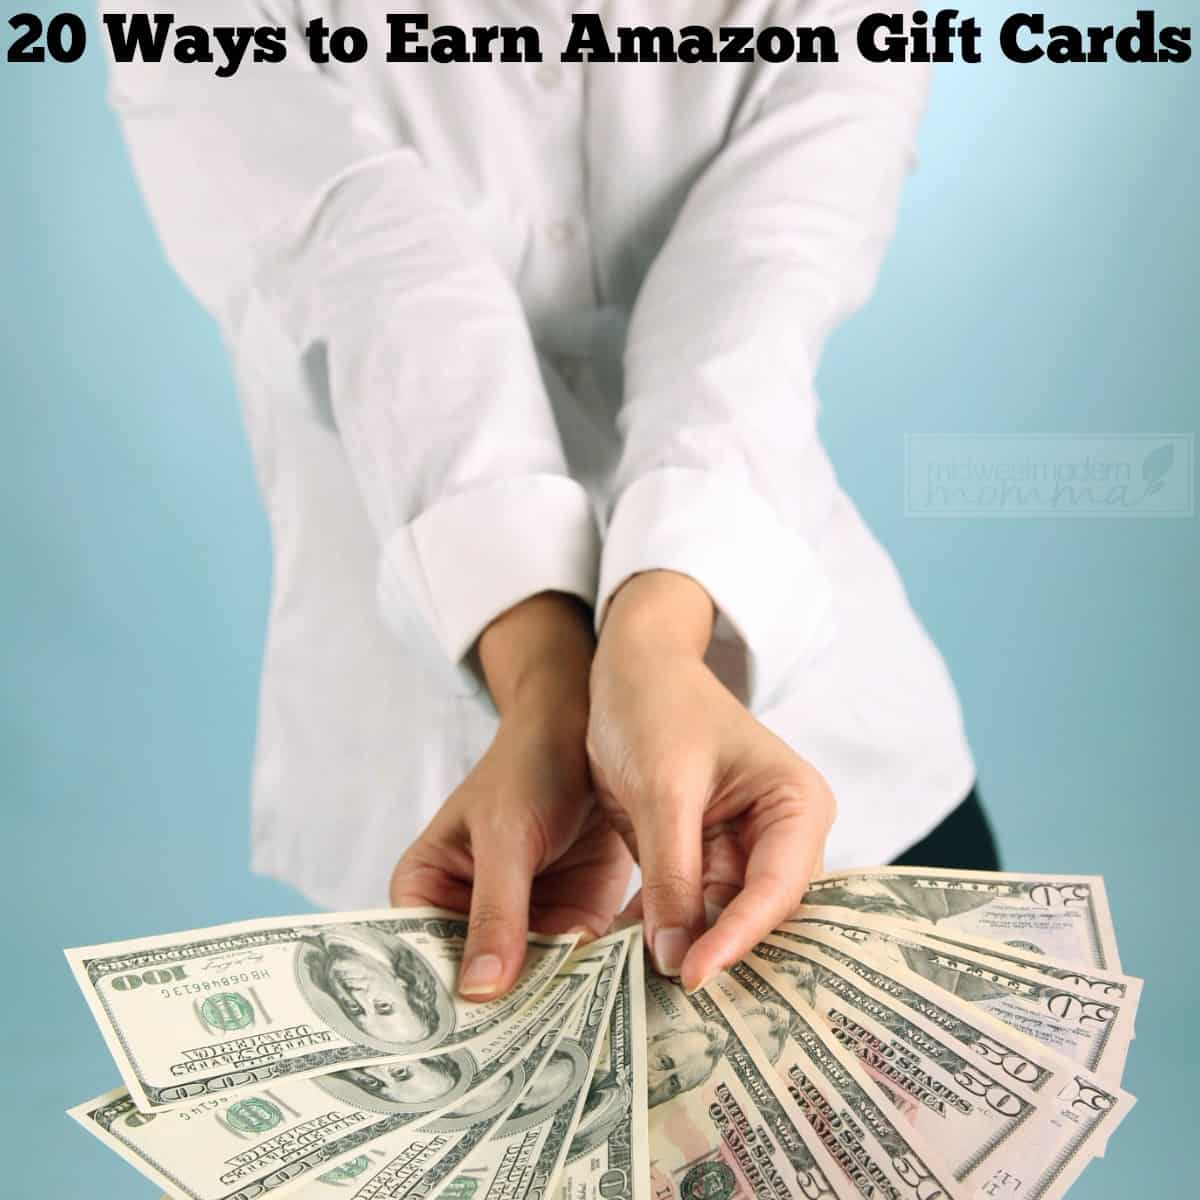 20 Ways to Earn Amazon Gift Cards for free! | Midwest Modern Momma